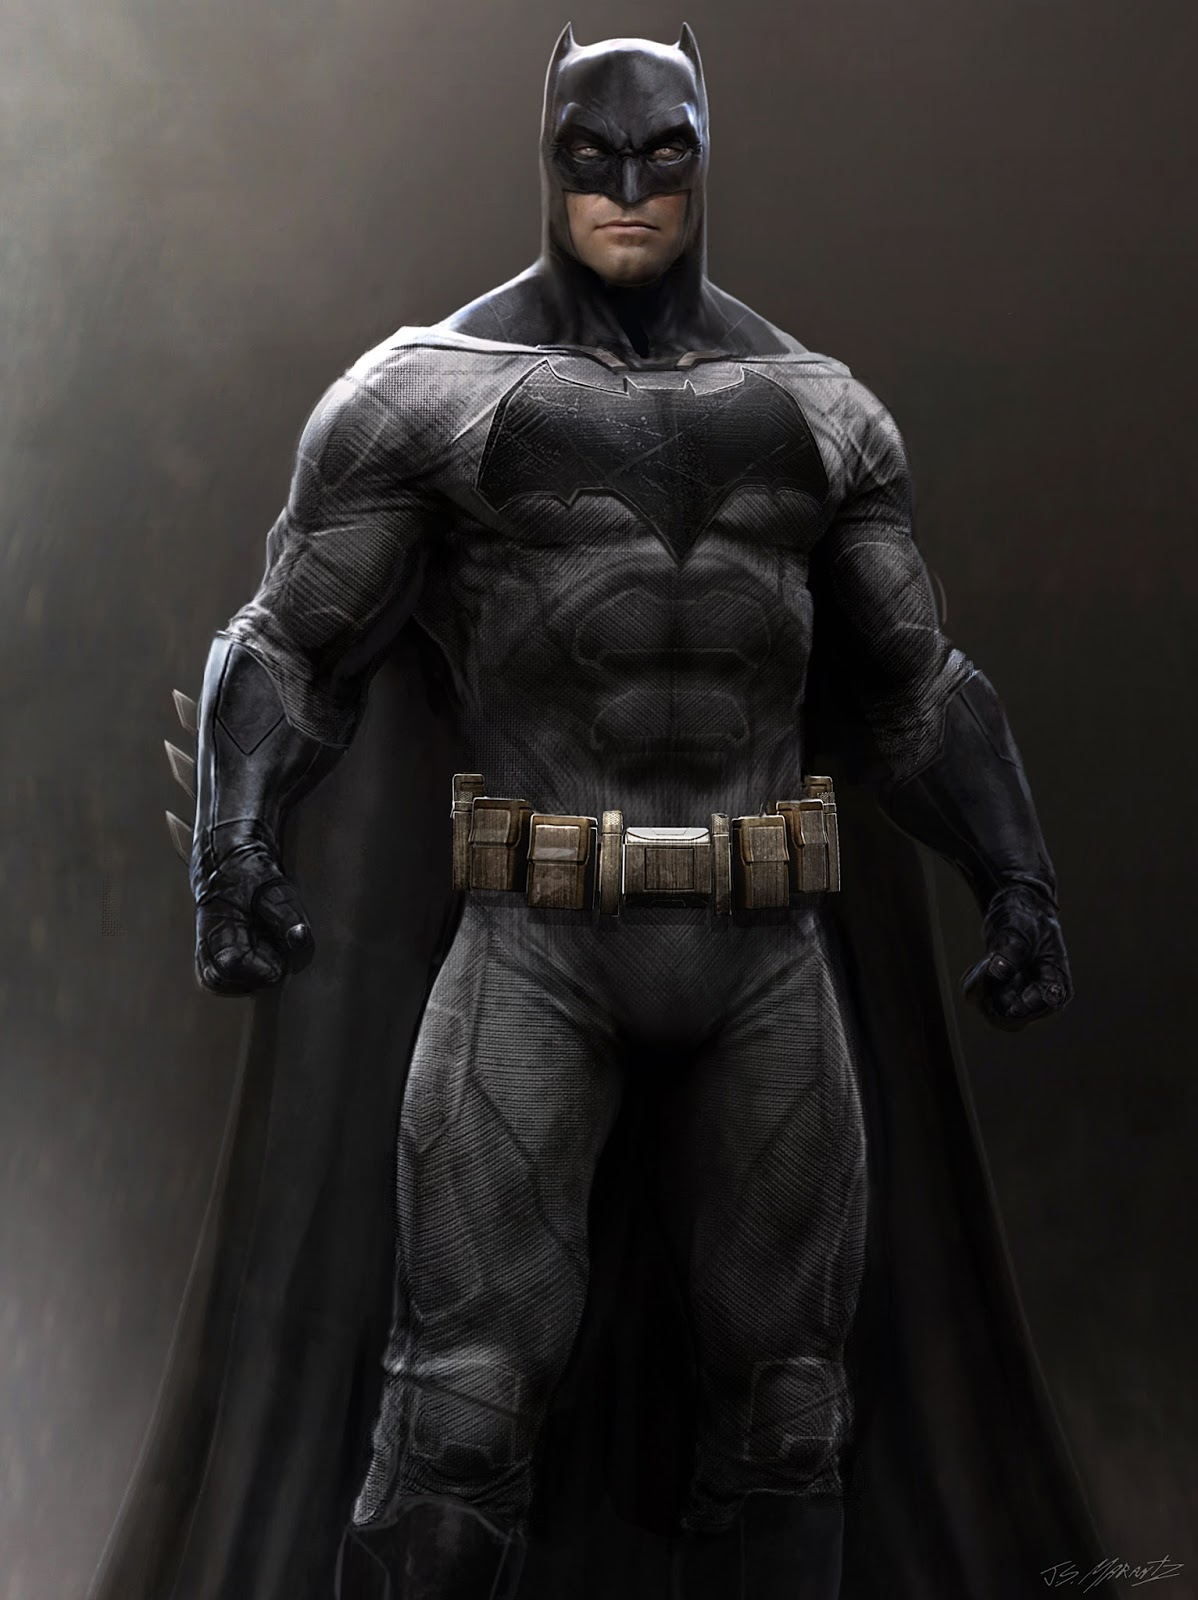 ... but was lucky enough to be able to focus on Illustrating the new Batman costume with the incredible costume designer Michael Wilkinson. & New detailed Batman v Superman images released of Ben Afflecku0027s ...